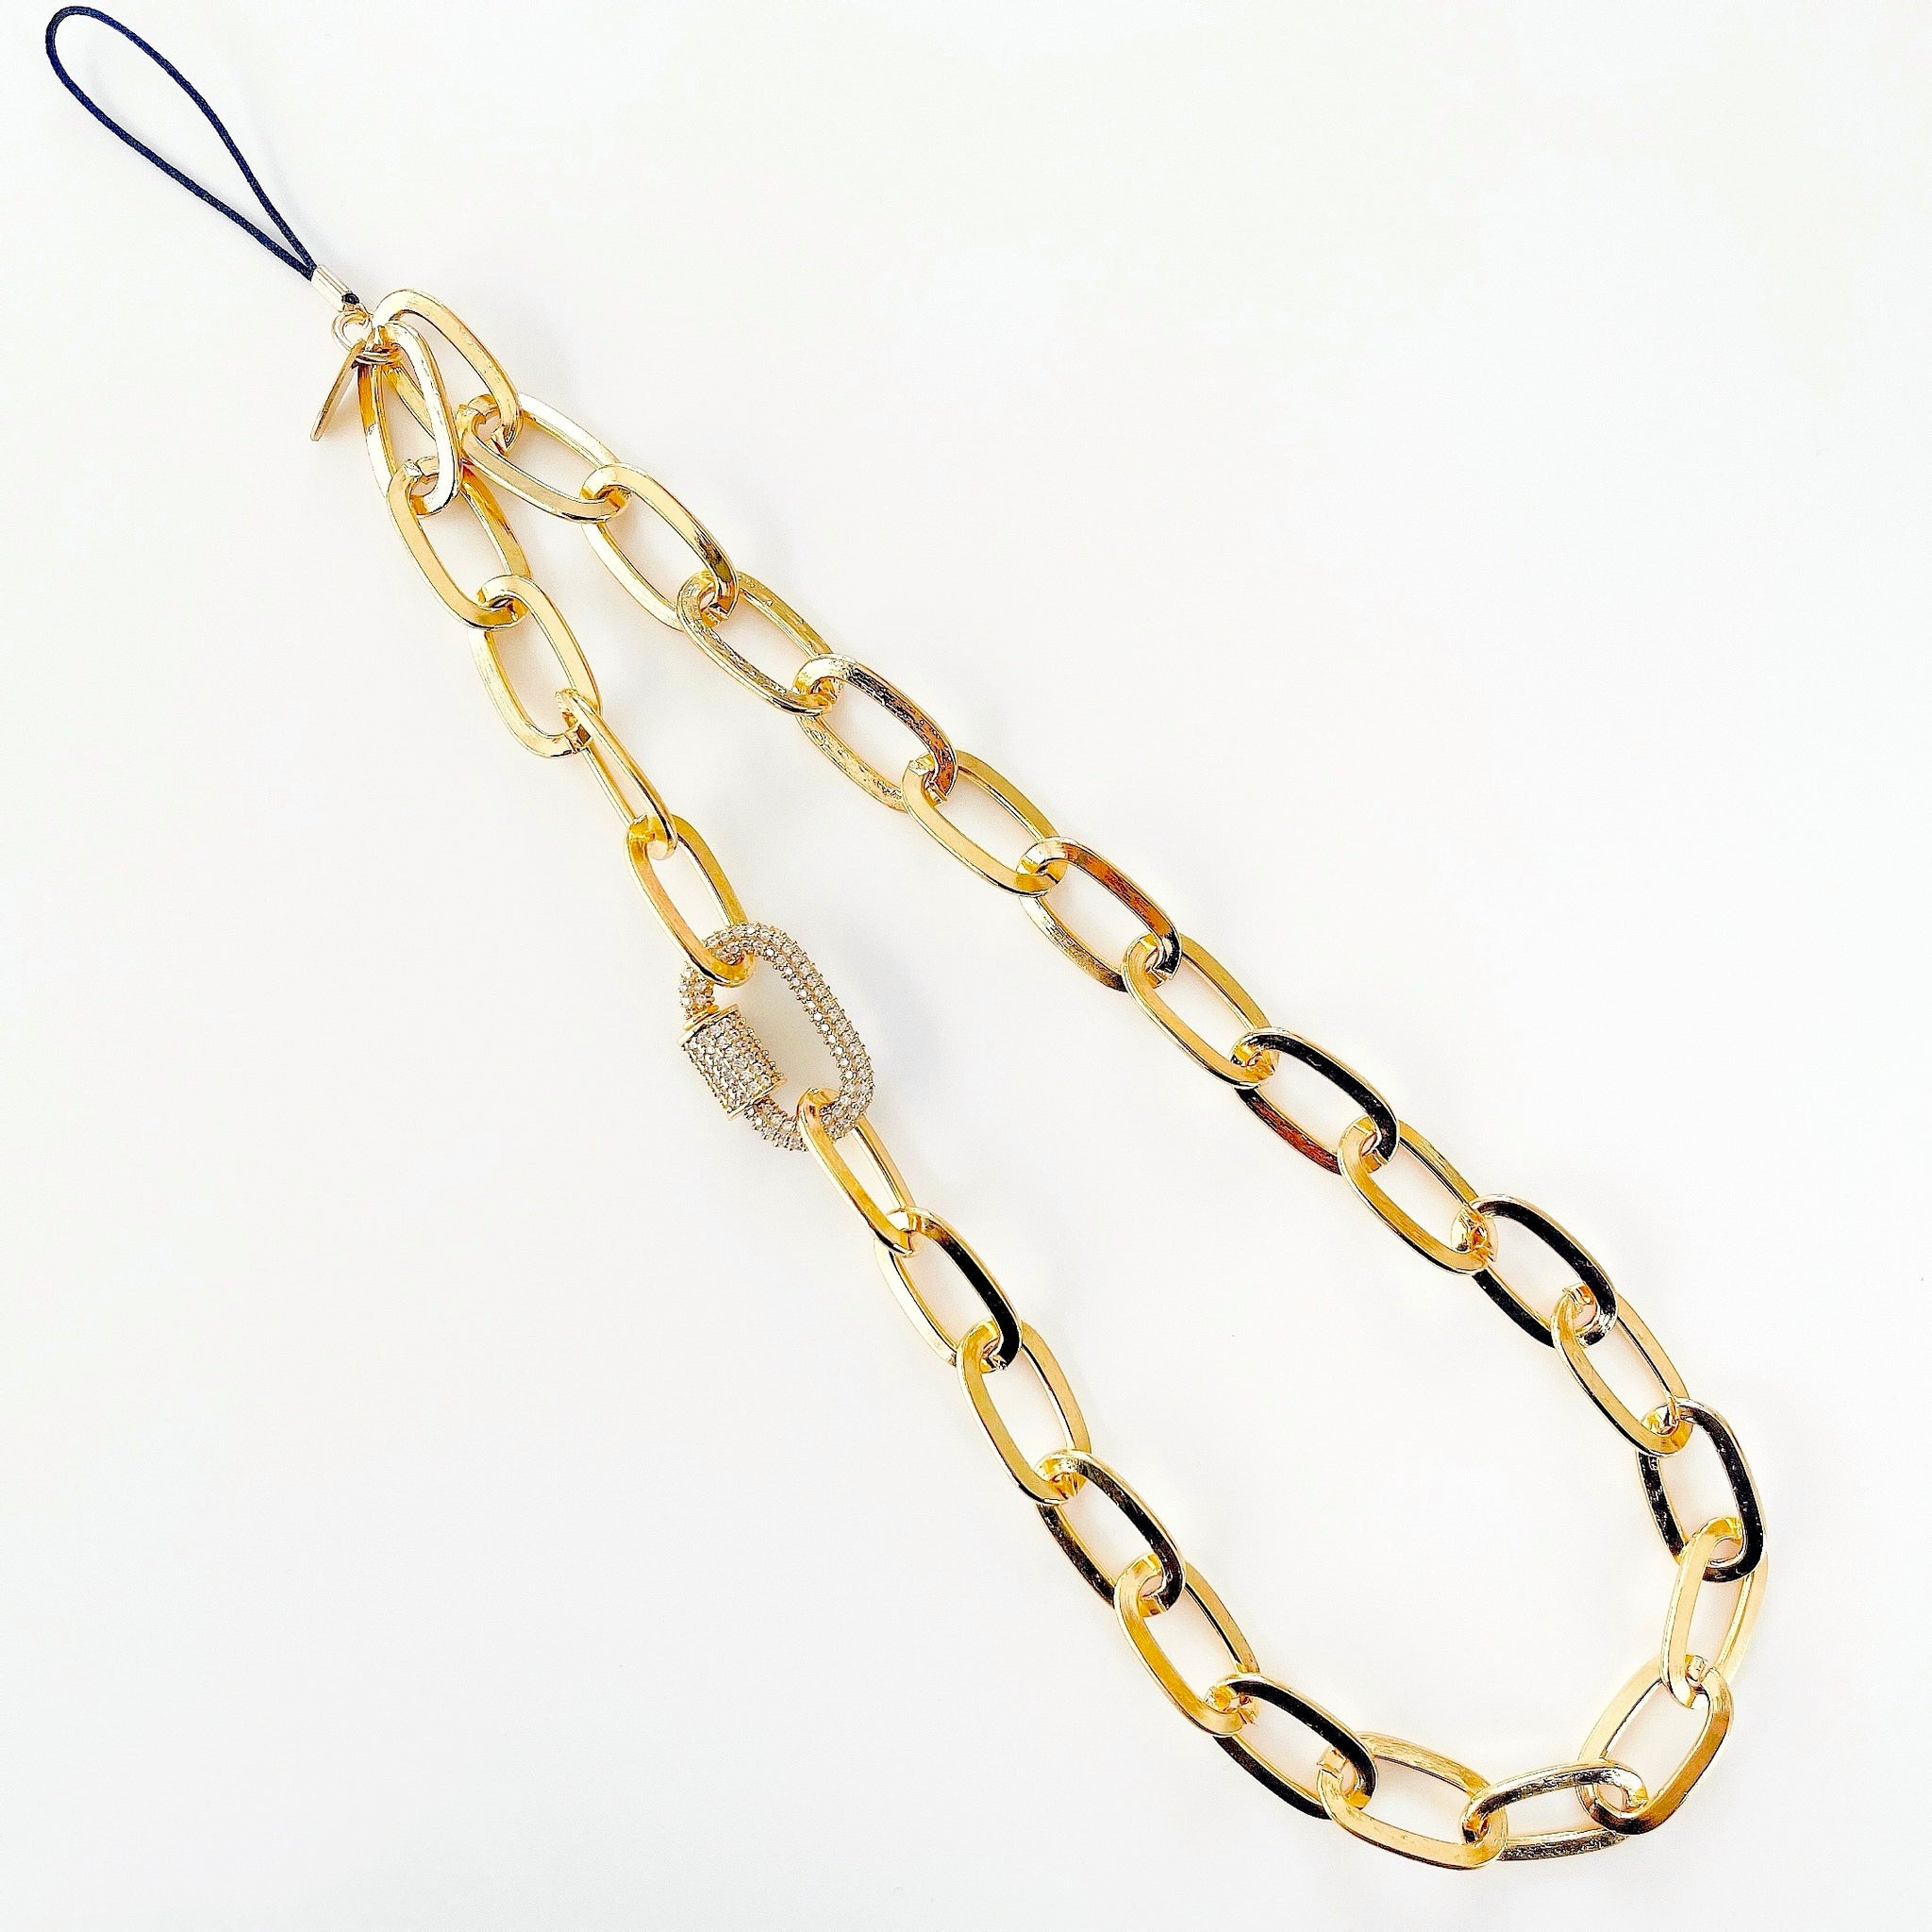 NEW ! Double Phone Cord NO CHARM 1